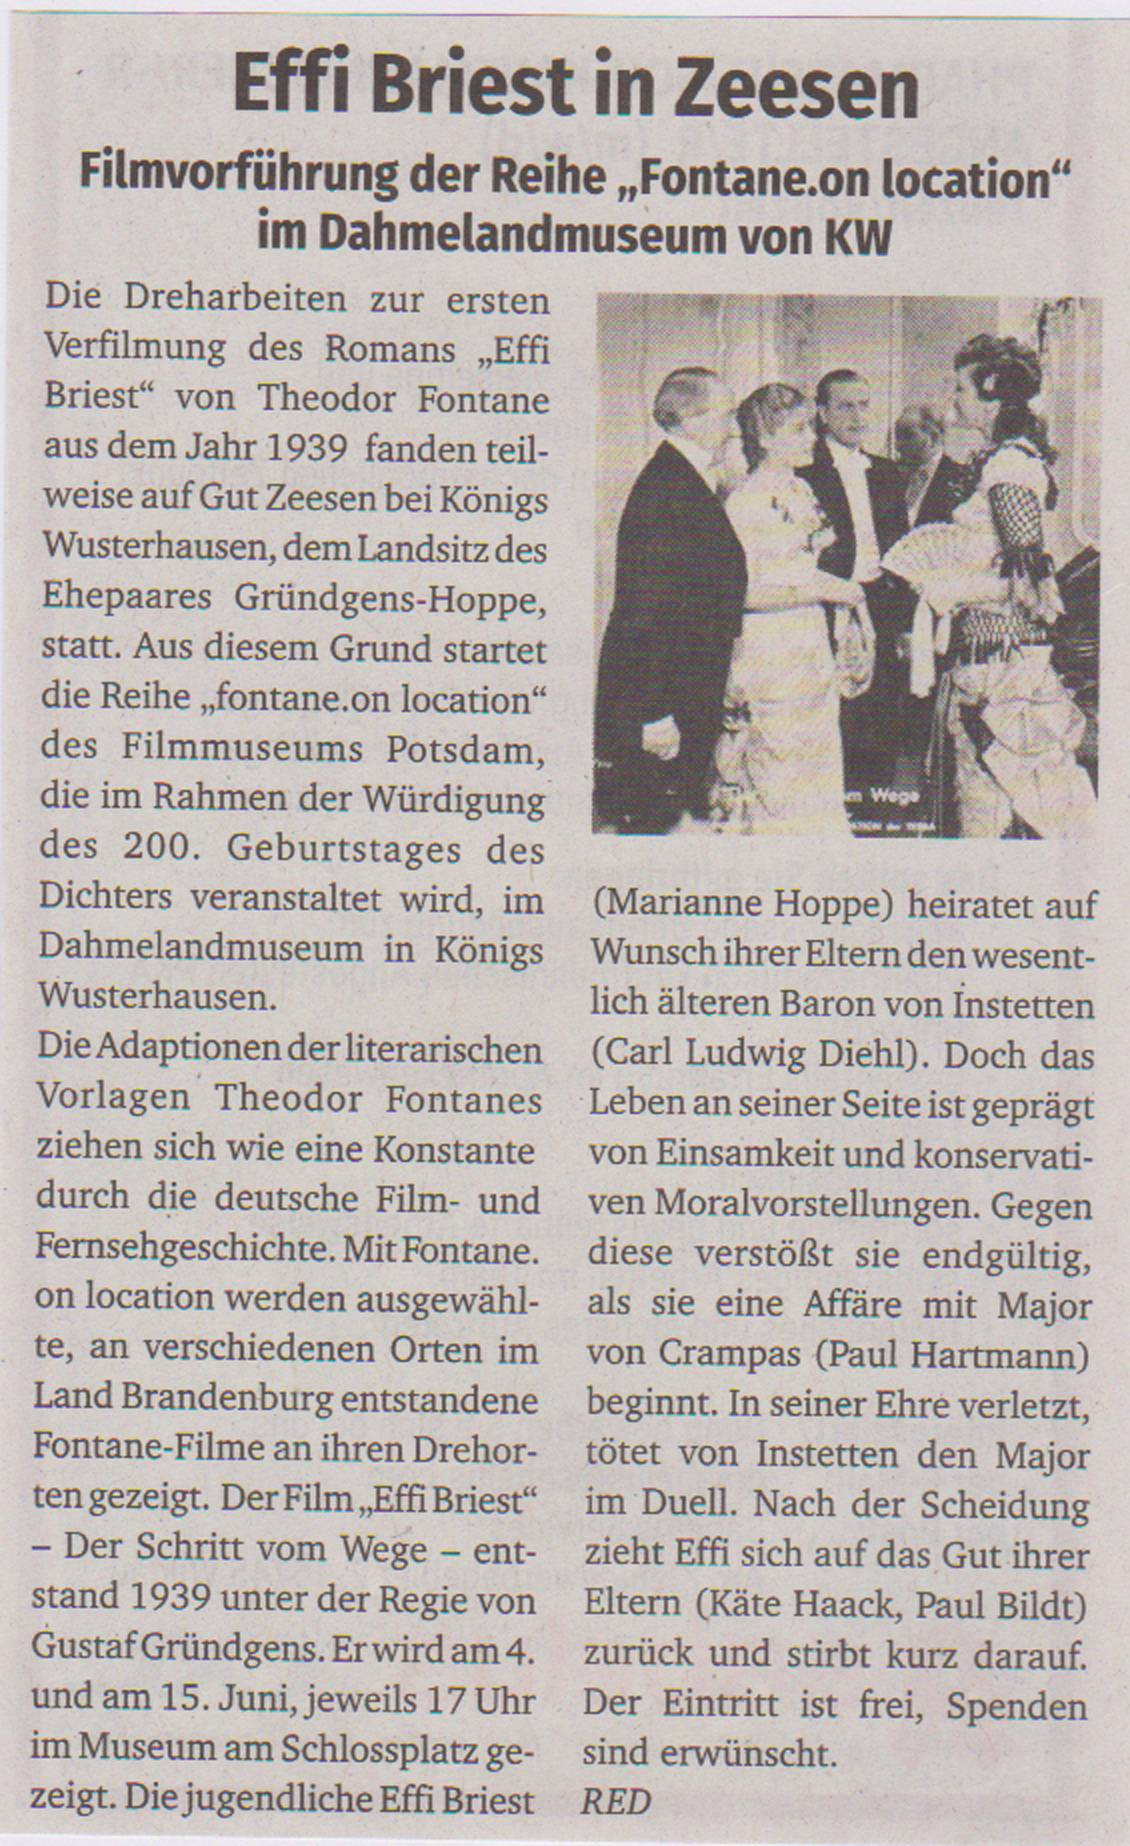 Effi Briest in Zeesen, KAWE-Kurier, 29. Jg., Nr. 22, S. 6 vom 29.05.2019